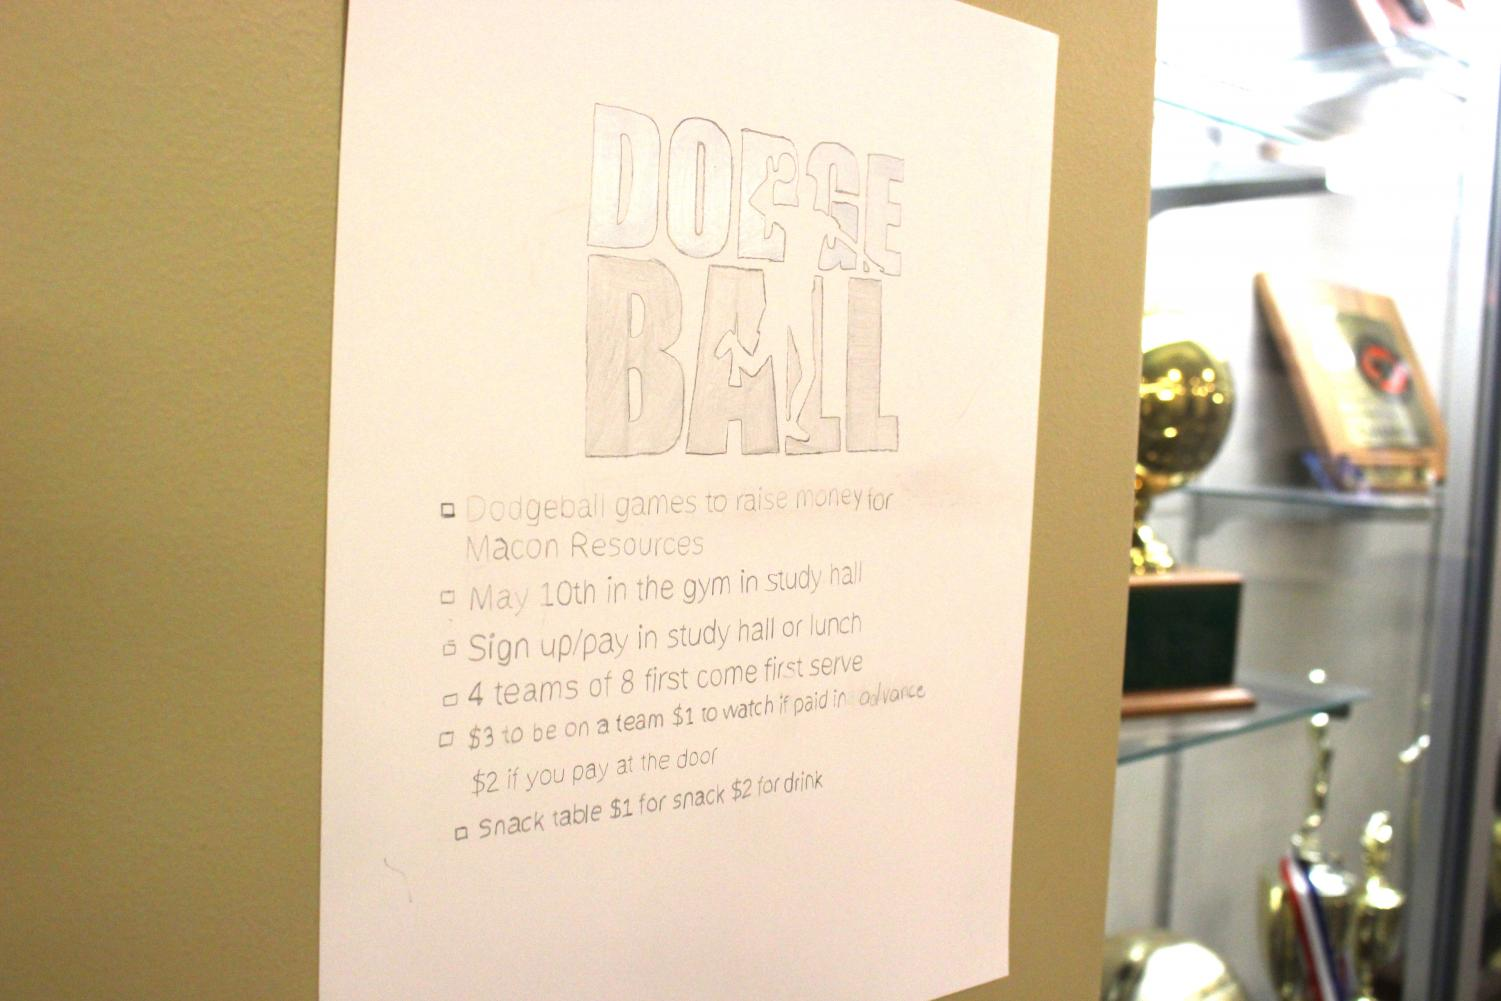 Juniors prepare a dodge ball tournament in order to raise money for Macon Resources. Tournament will be held May 10 during study hall in the gym.